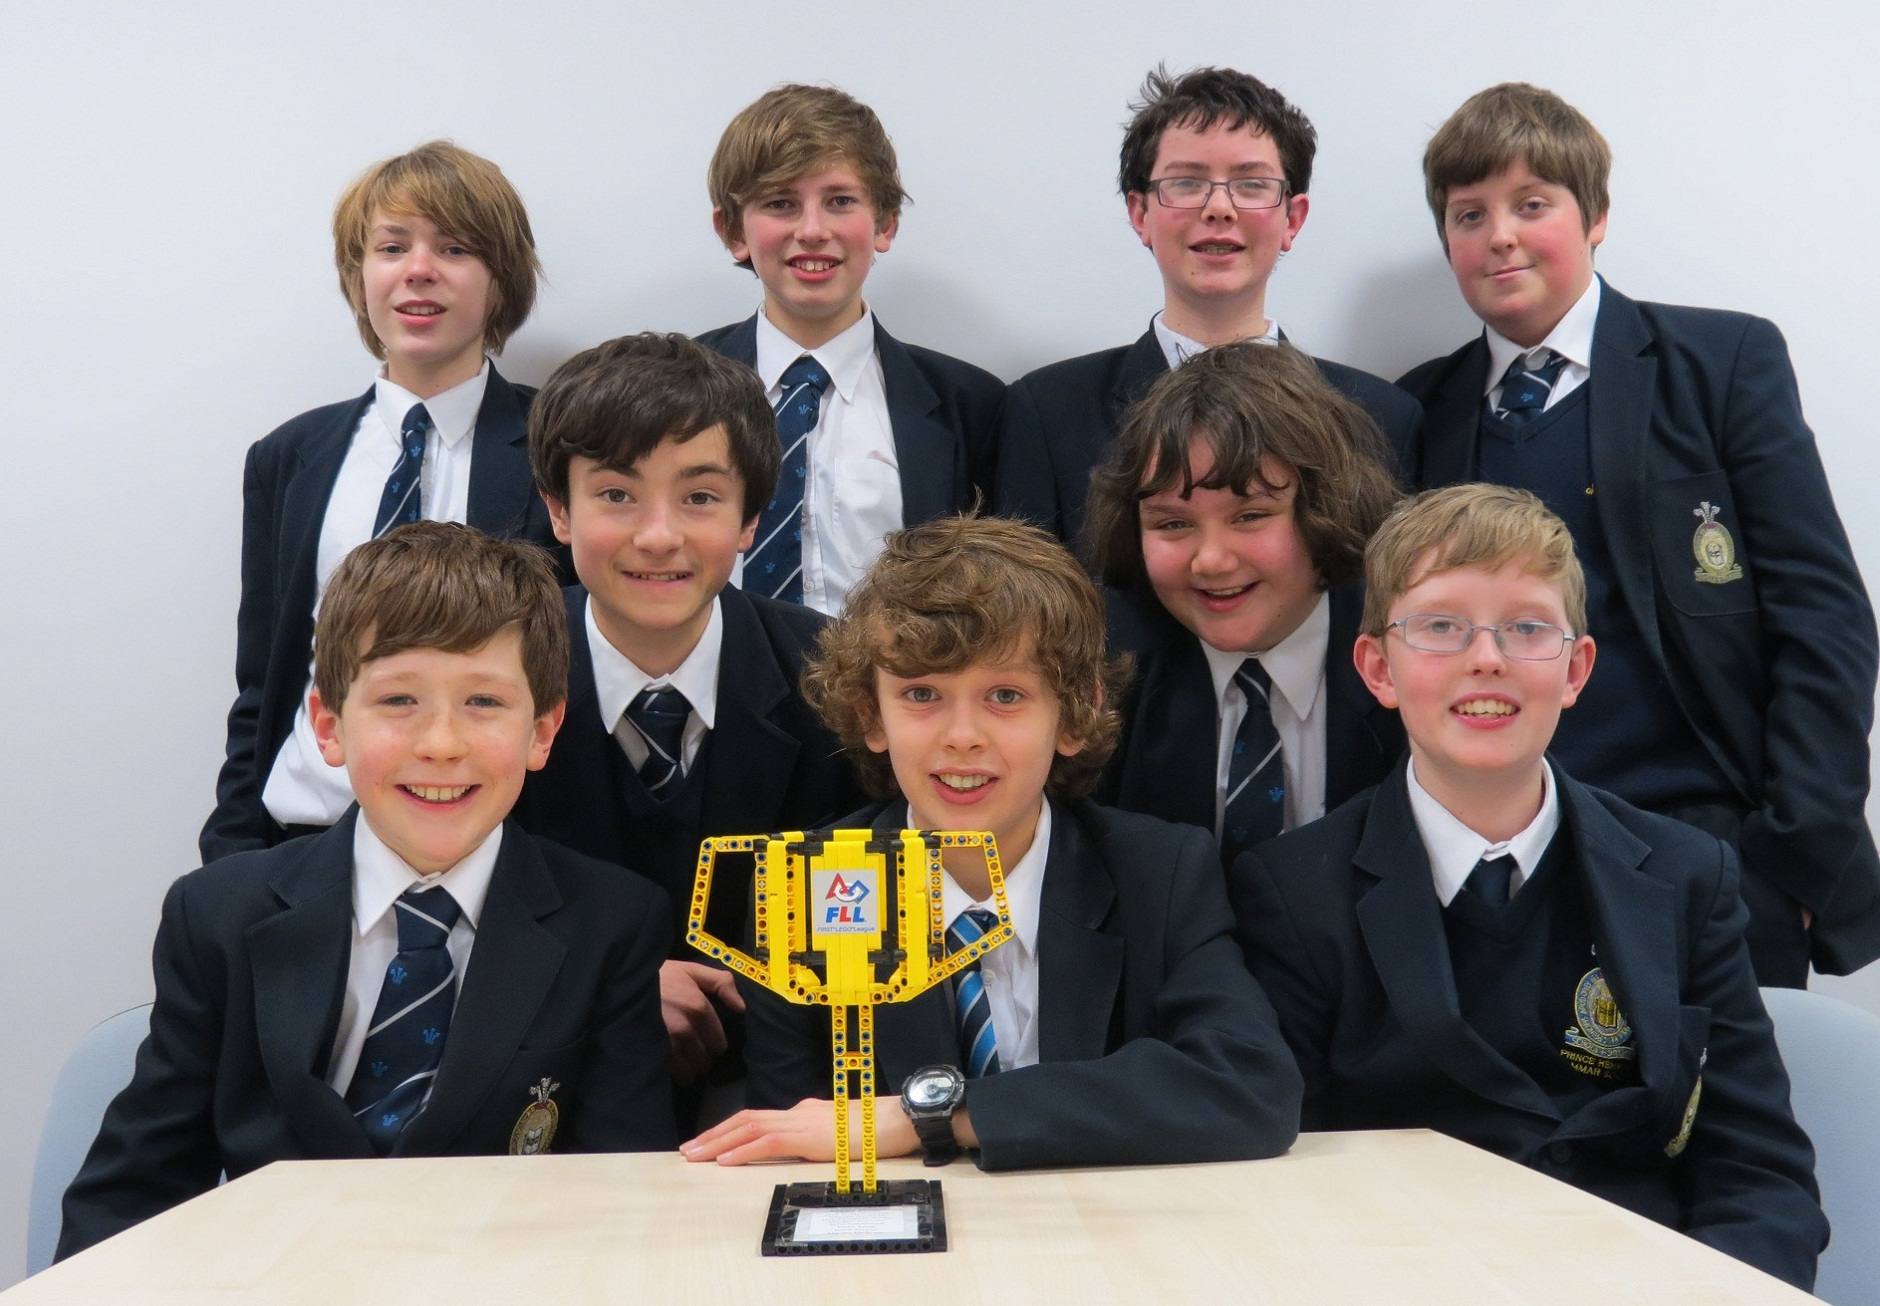 Best Robot Design team from Prince Henry's Grammar School with their trophy, with lead designer Andrew